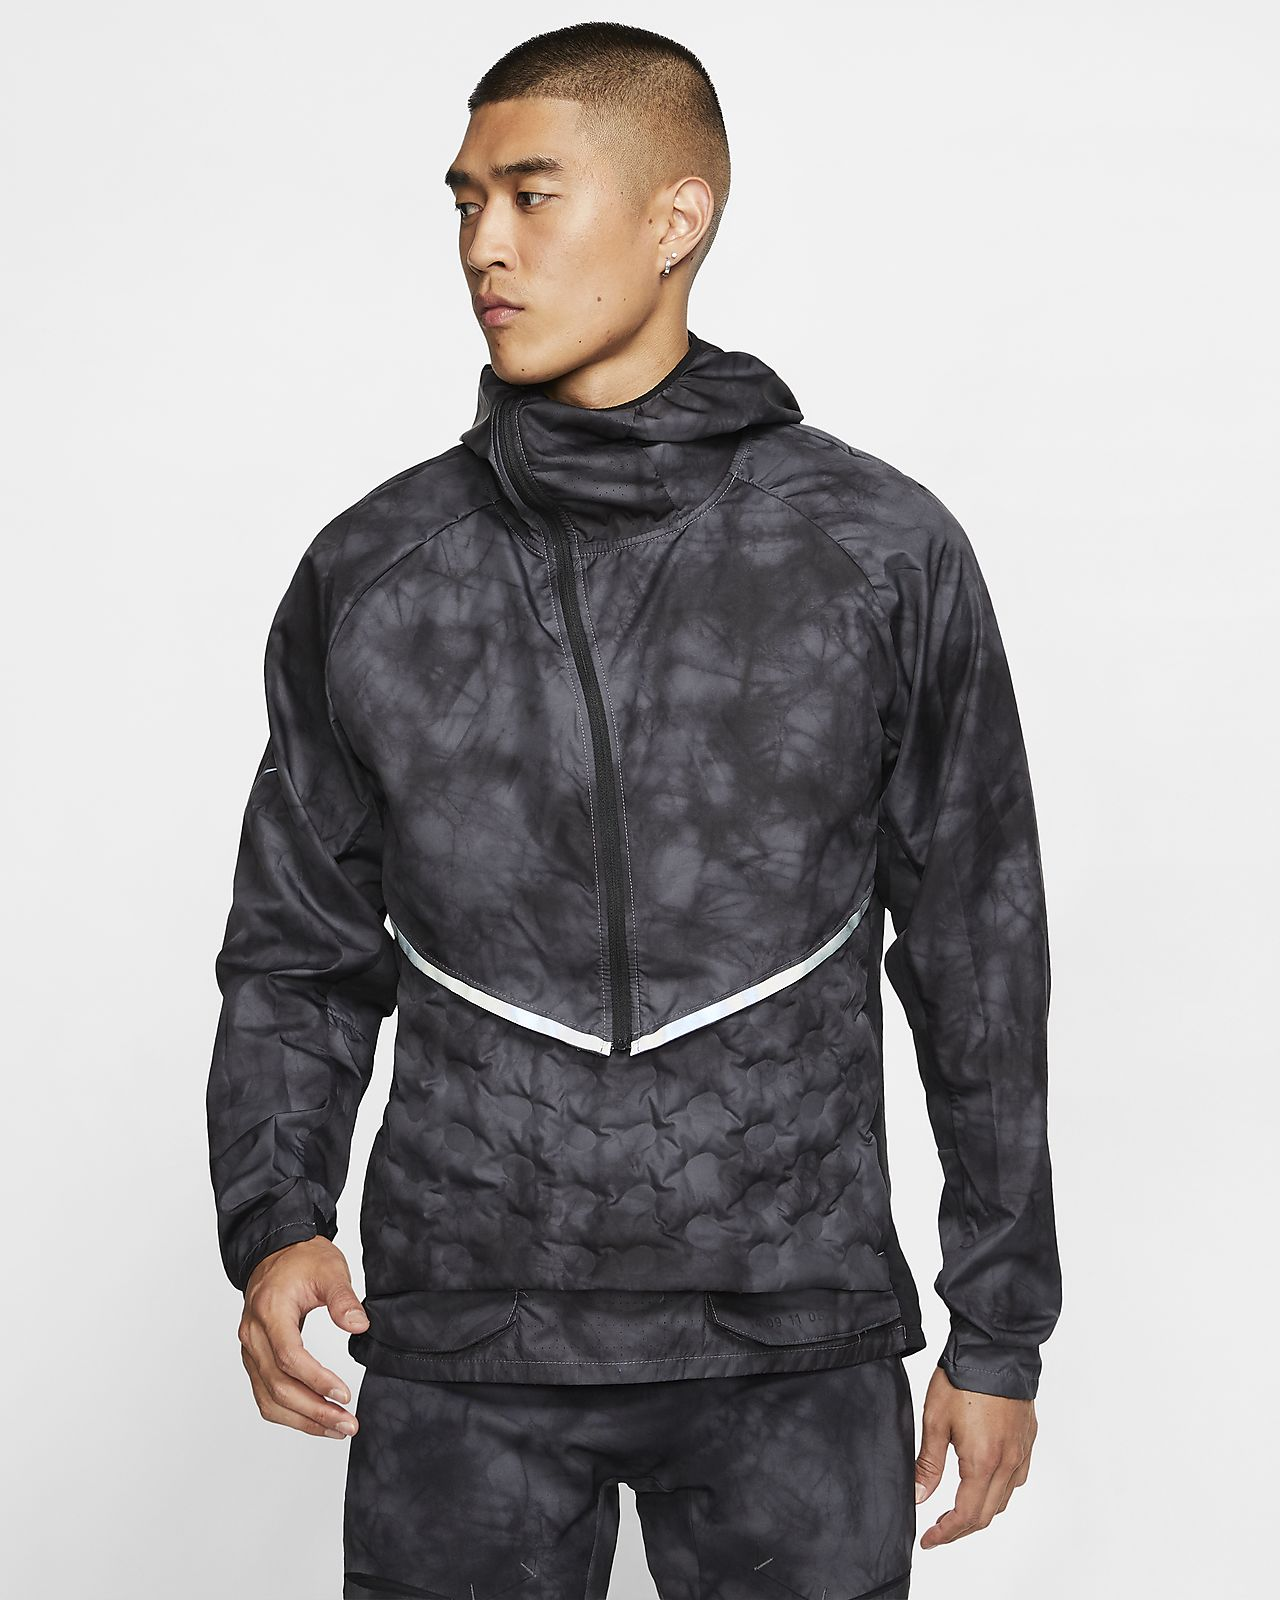 Nike AeroLoft Men's Running Jacket